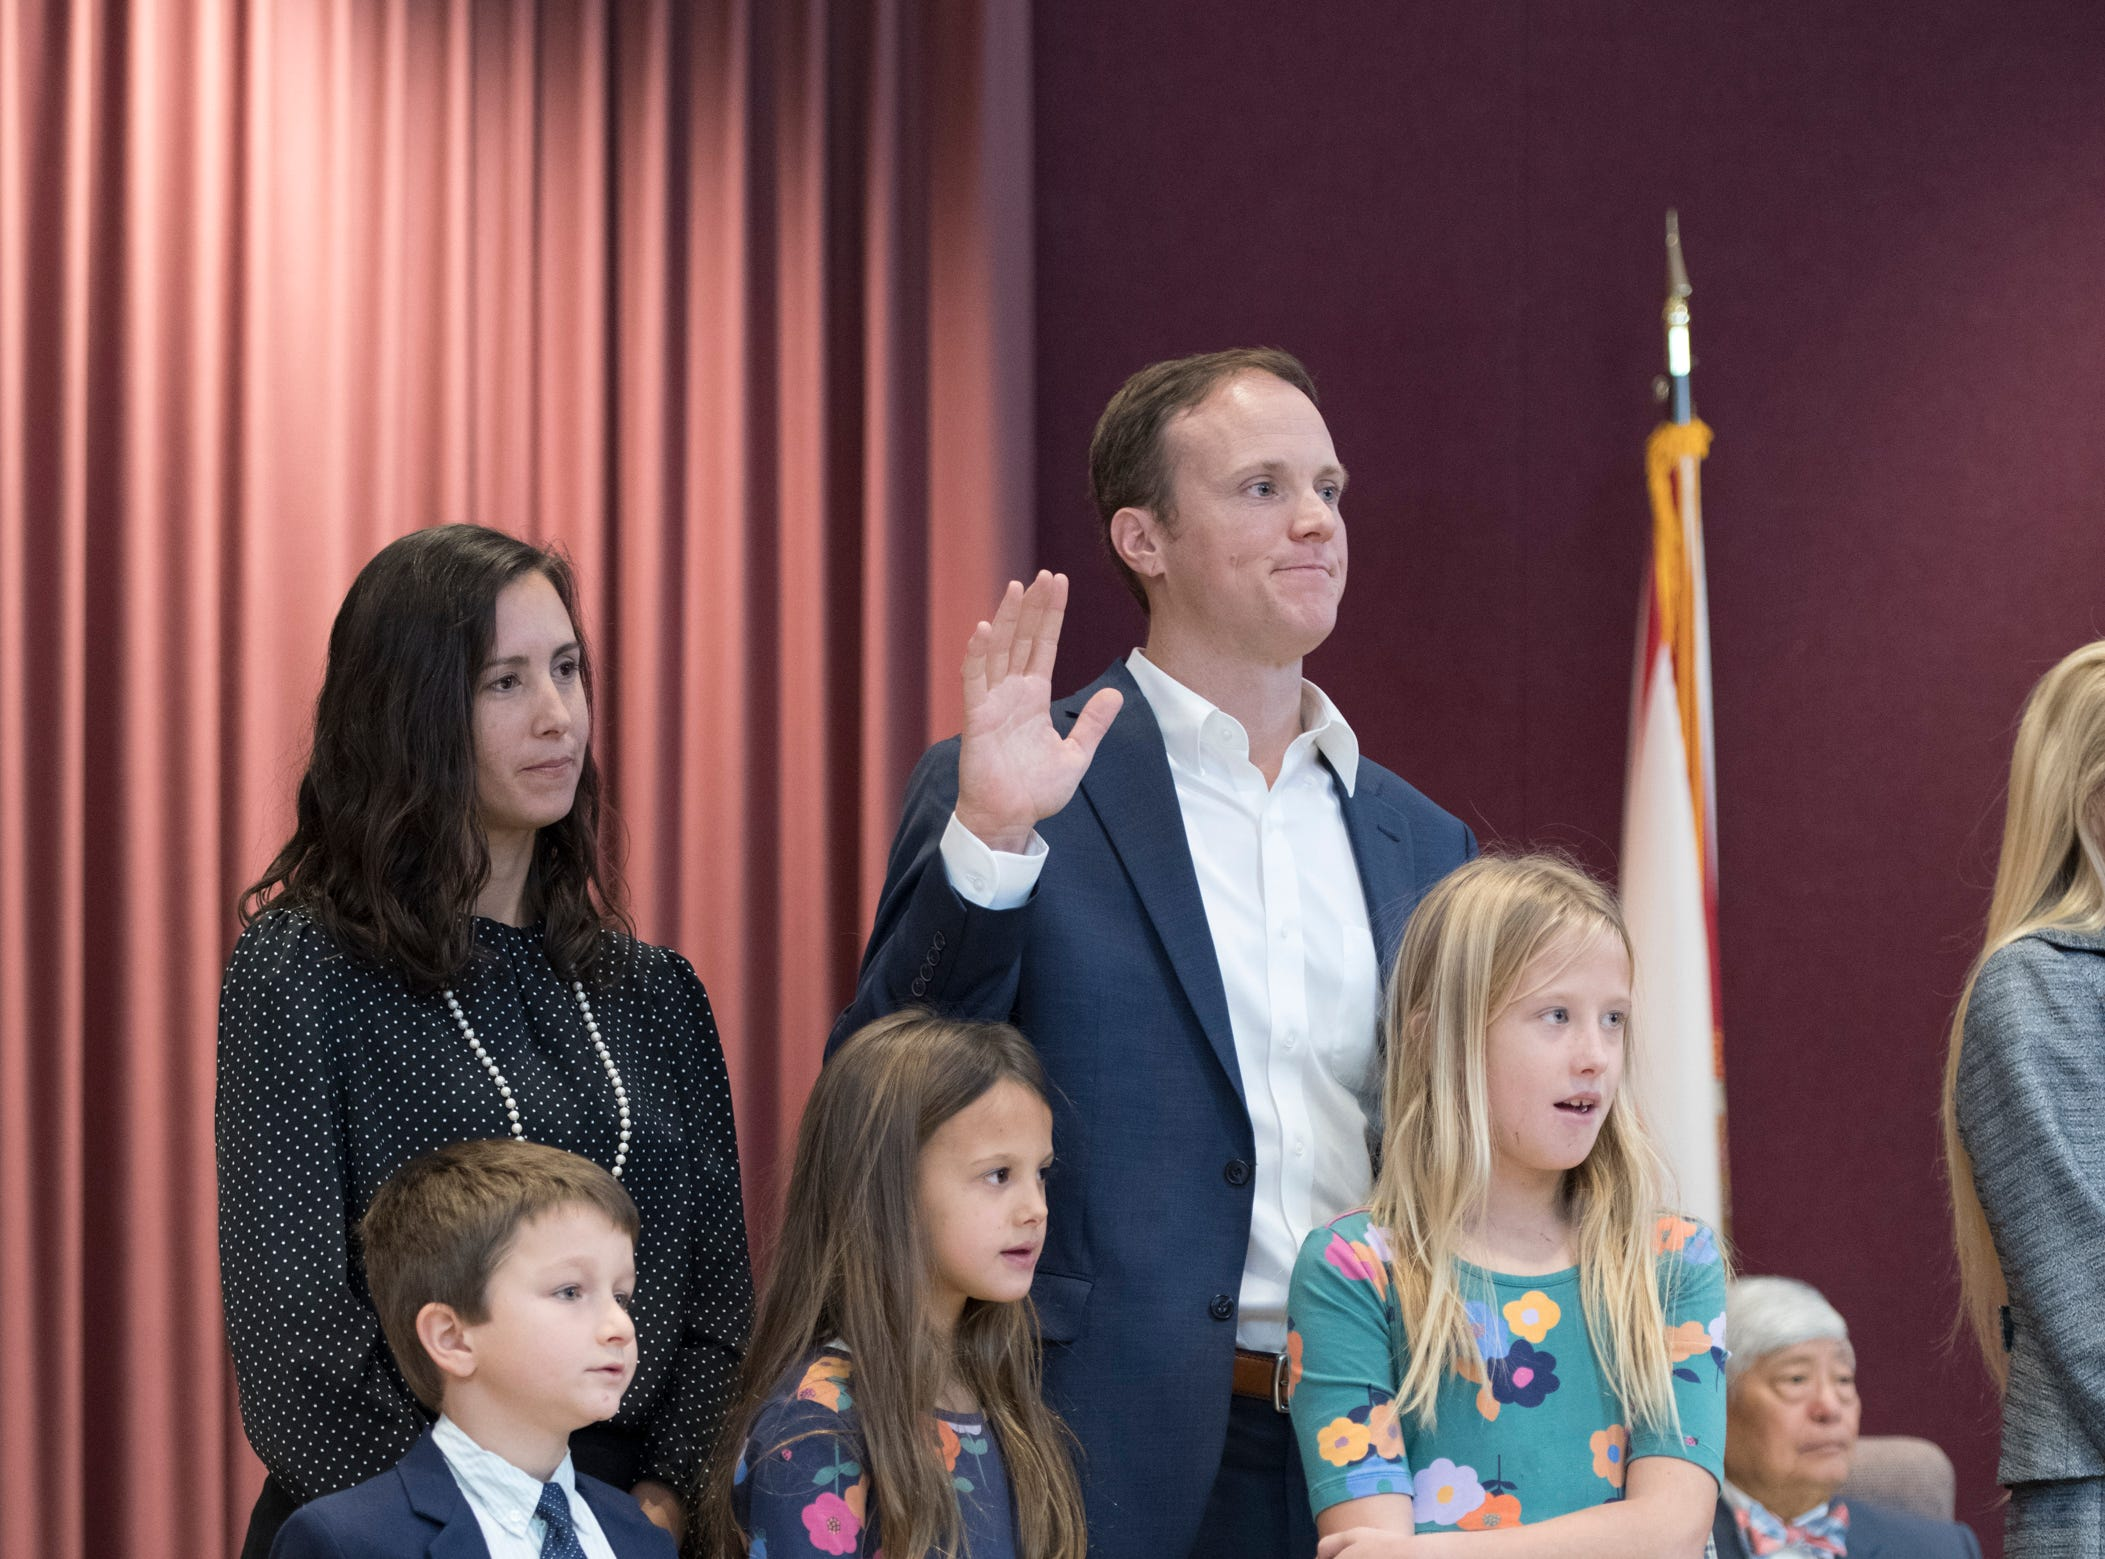 Newly elected council member Jared Moore raises his hand as he is sworn in during the Pensacola City Council installation ceremony at City Hall in Pensacola on Tuesday, November 27, 2018.